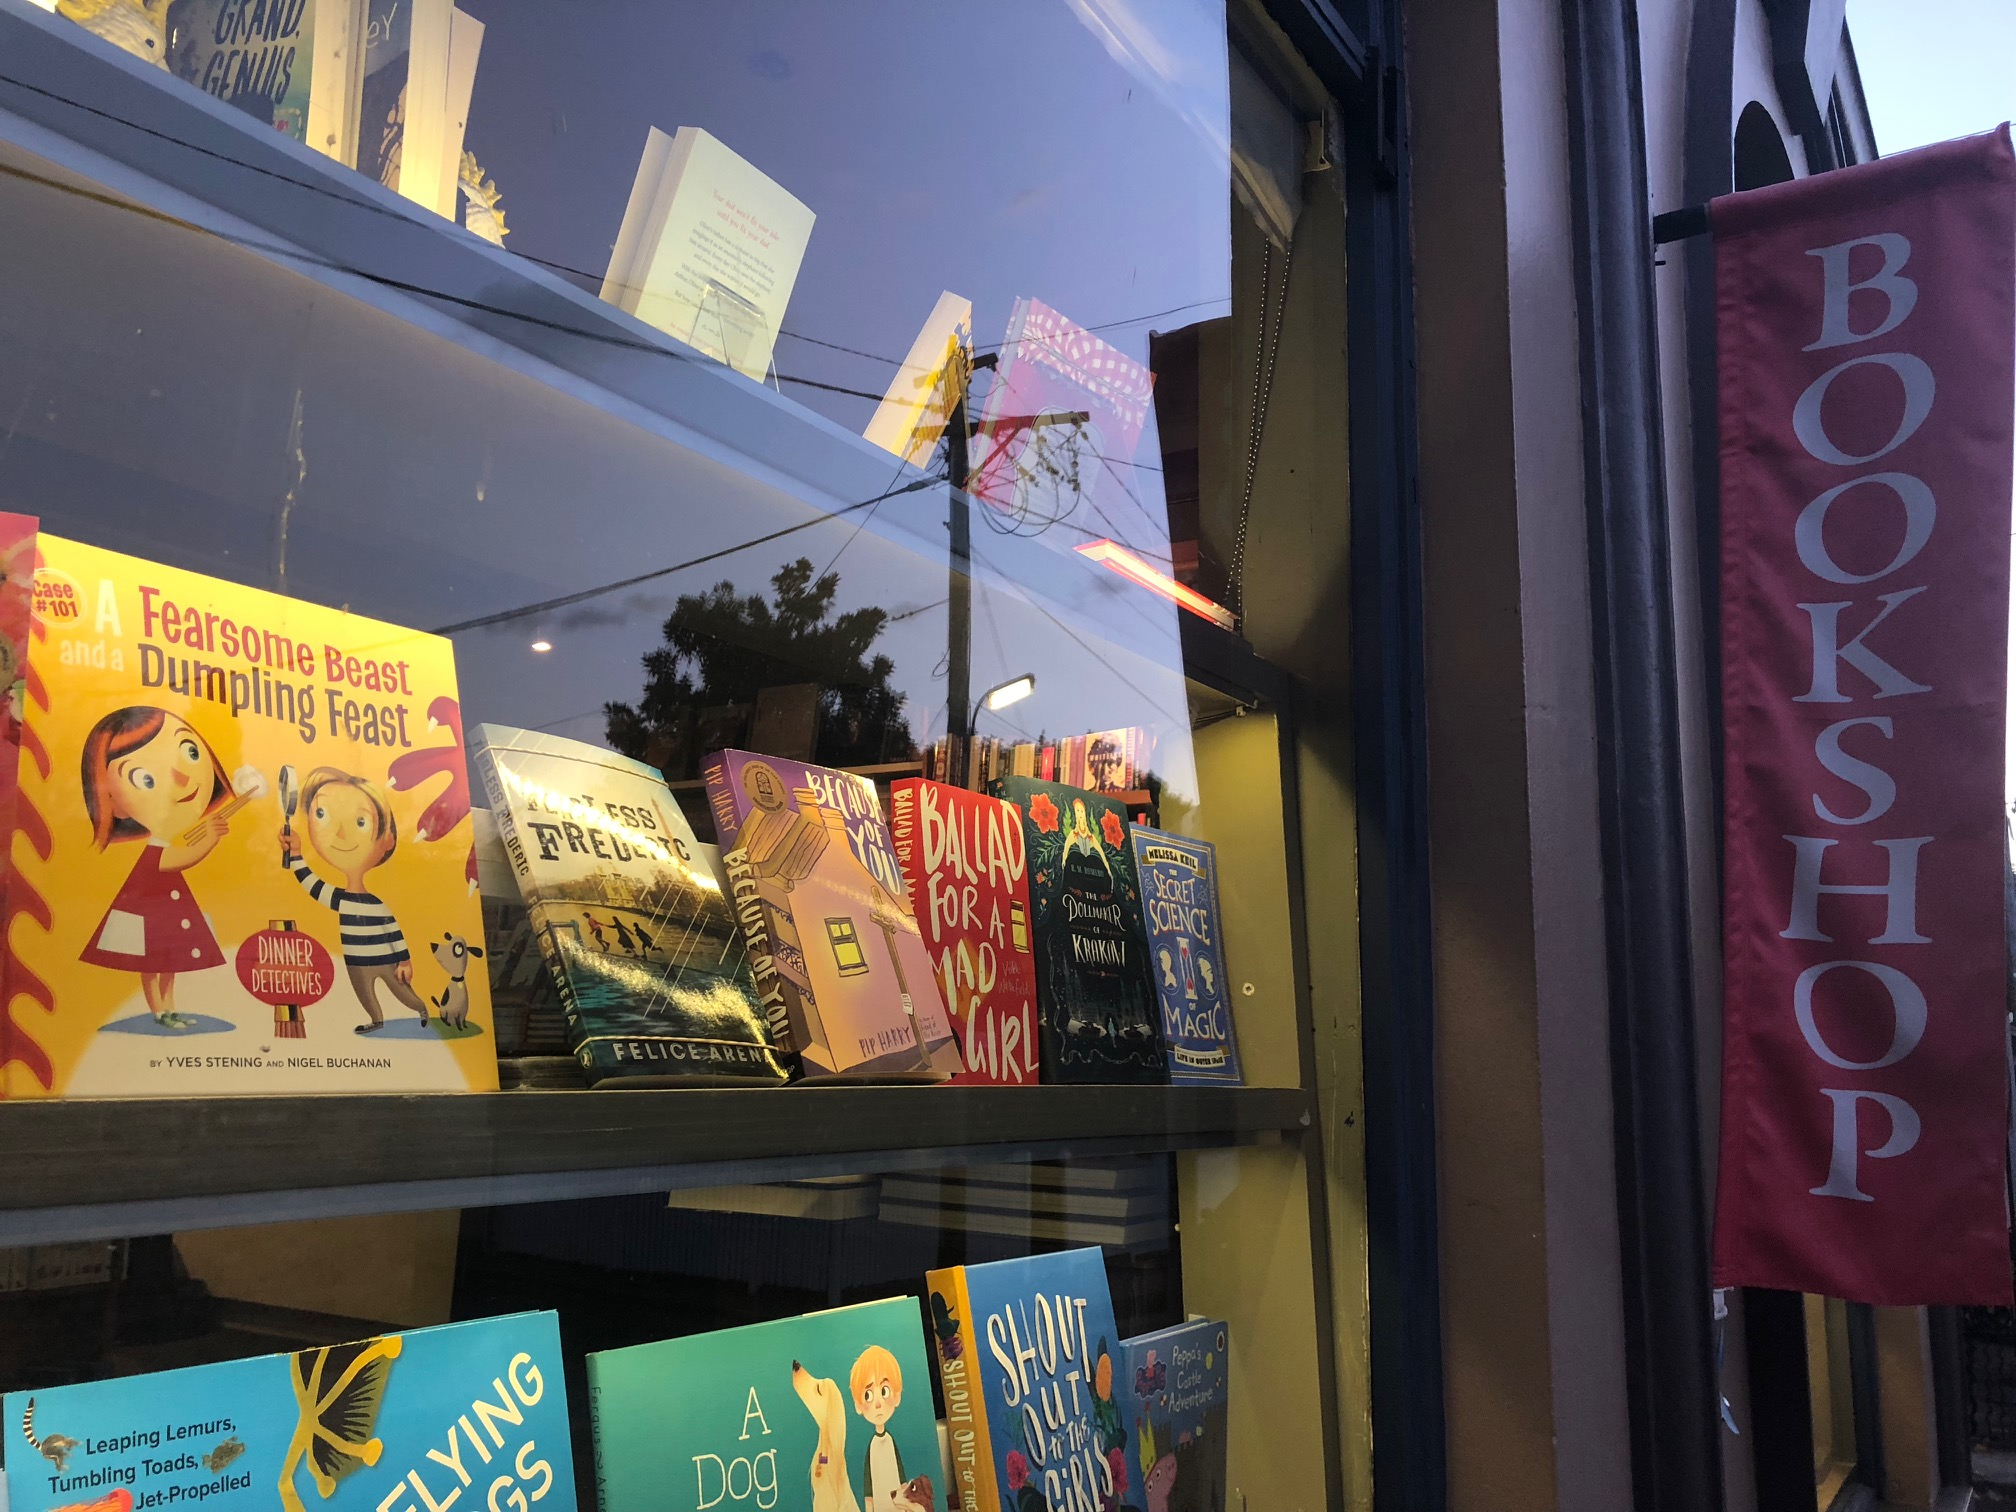 Woollahra Bookshop, formerly Lesley McKay's Bookstore, is one of the best bookstores in Sydney. Very proud to be selected. Here's a big thank you from us.